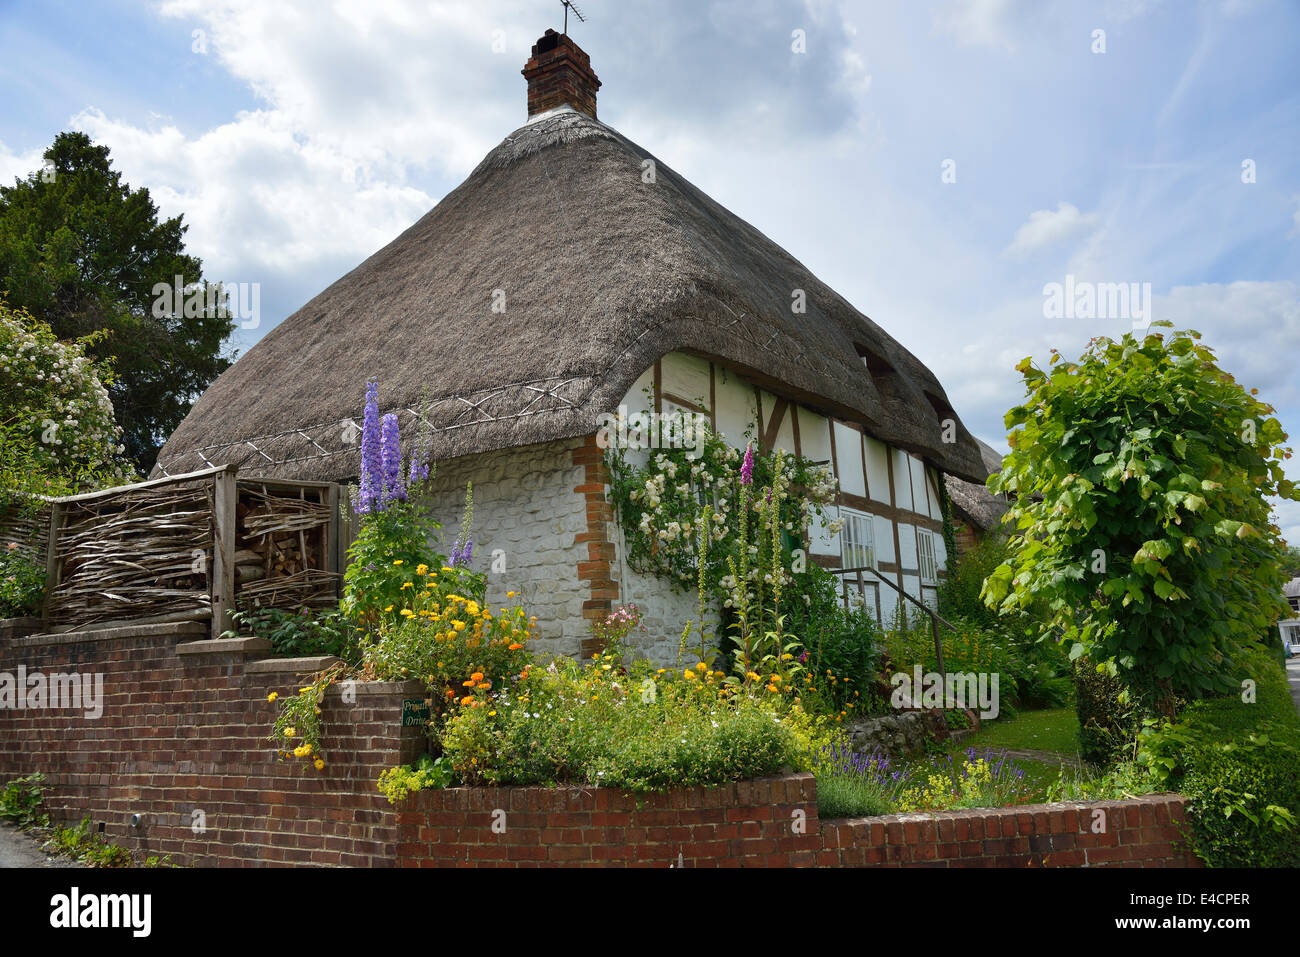 Thatched black and white country cottage in the village of  Selborne, Hampshire, England, UK - Stock Image